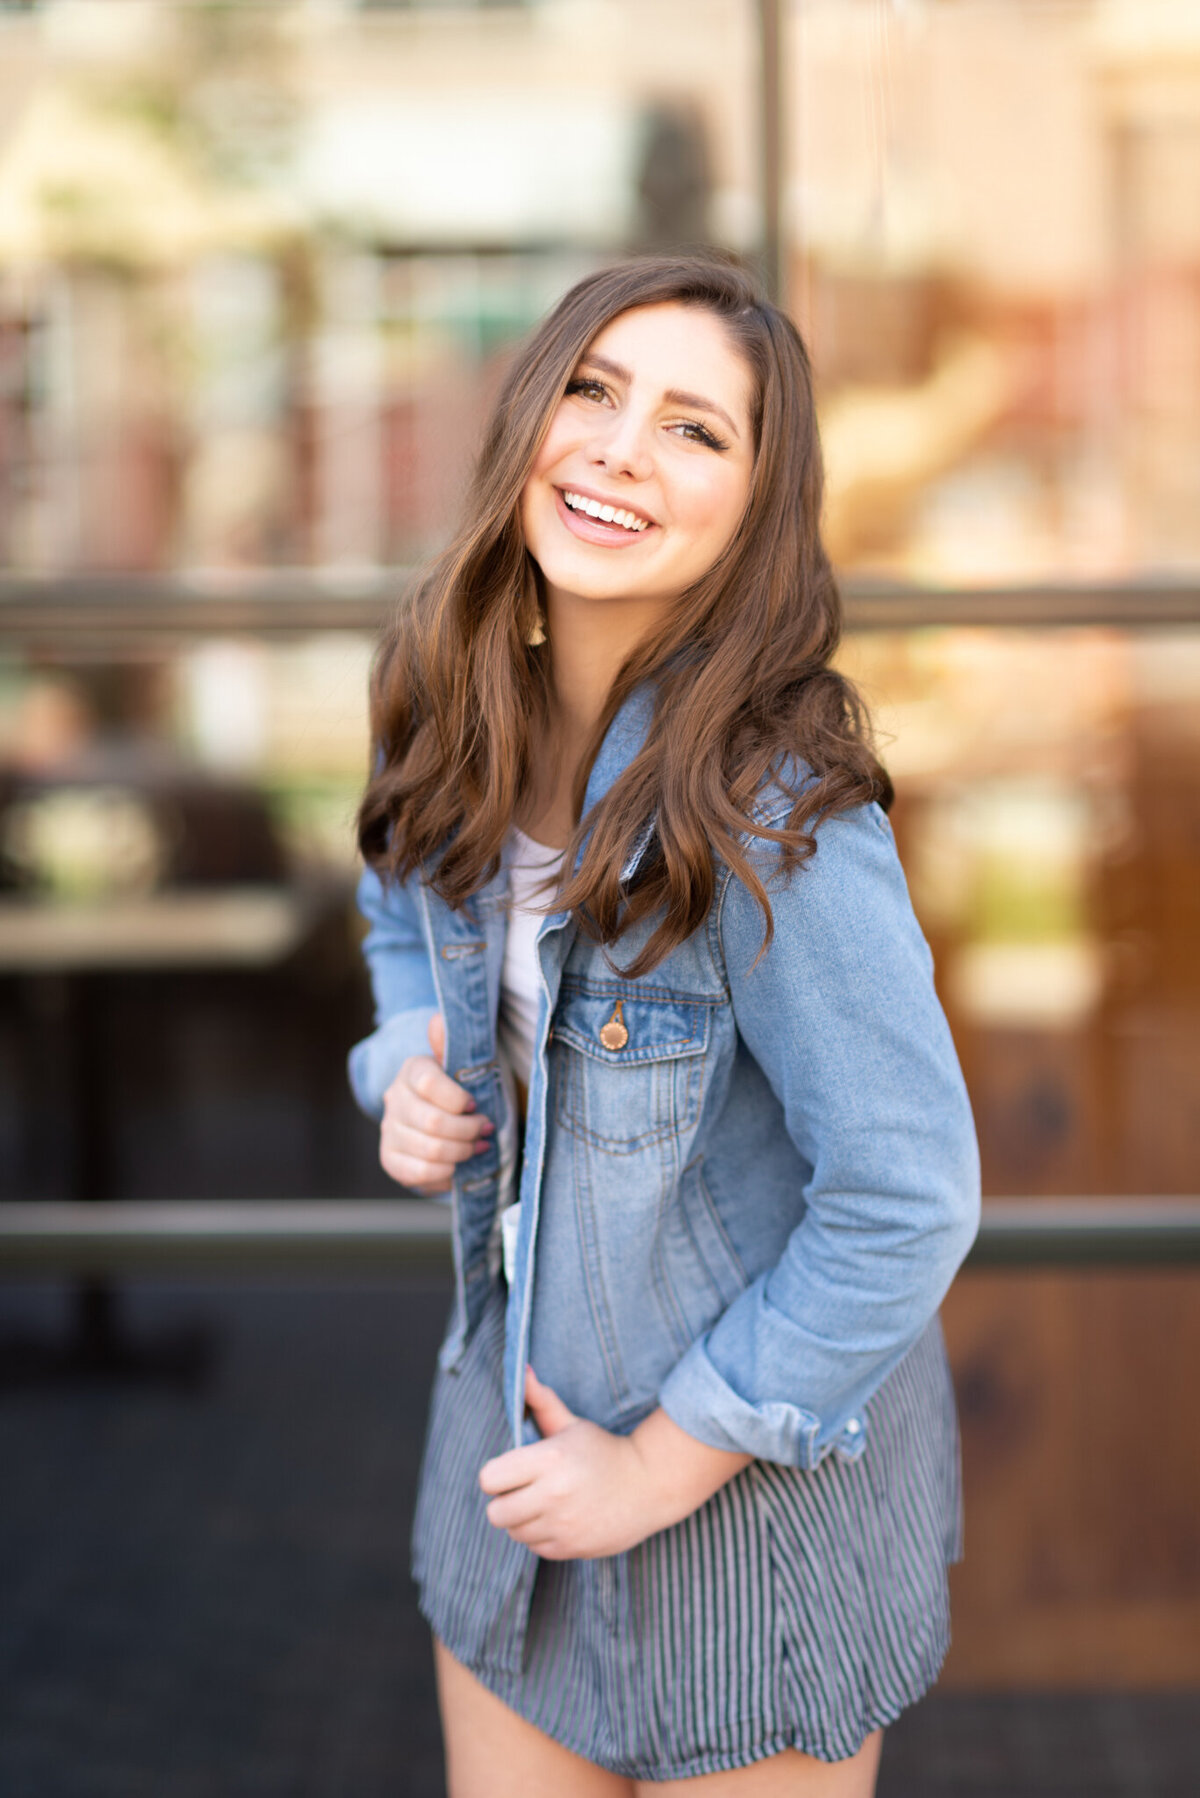 Laughing-woman-in-denim-posing-high-school-senior-picture